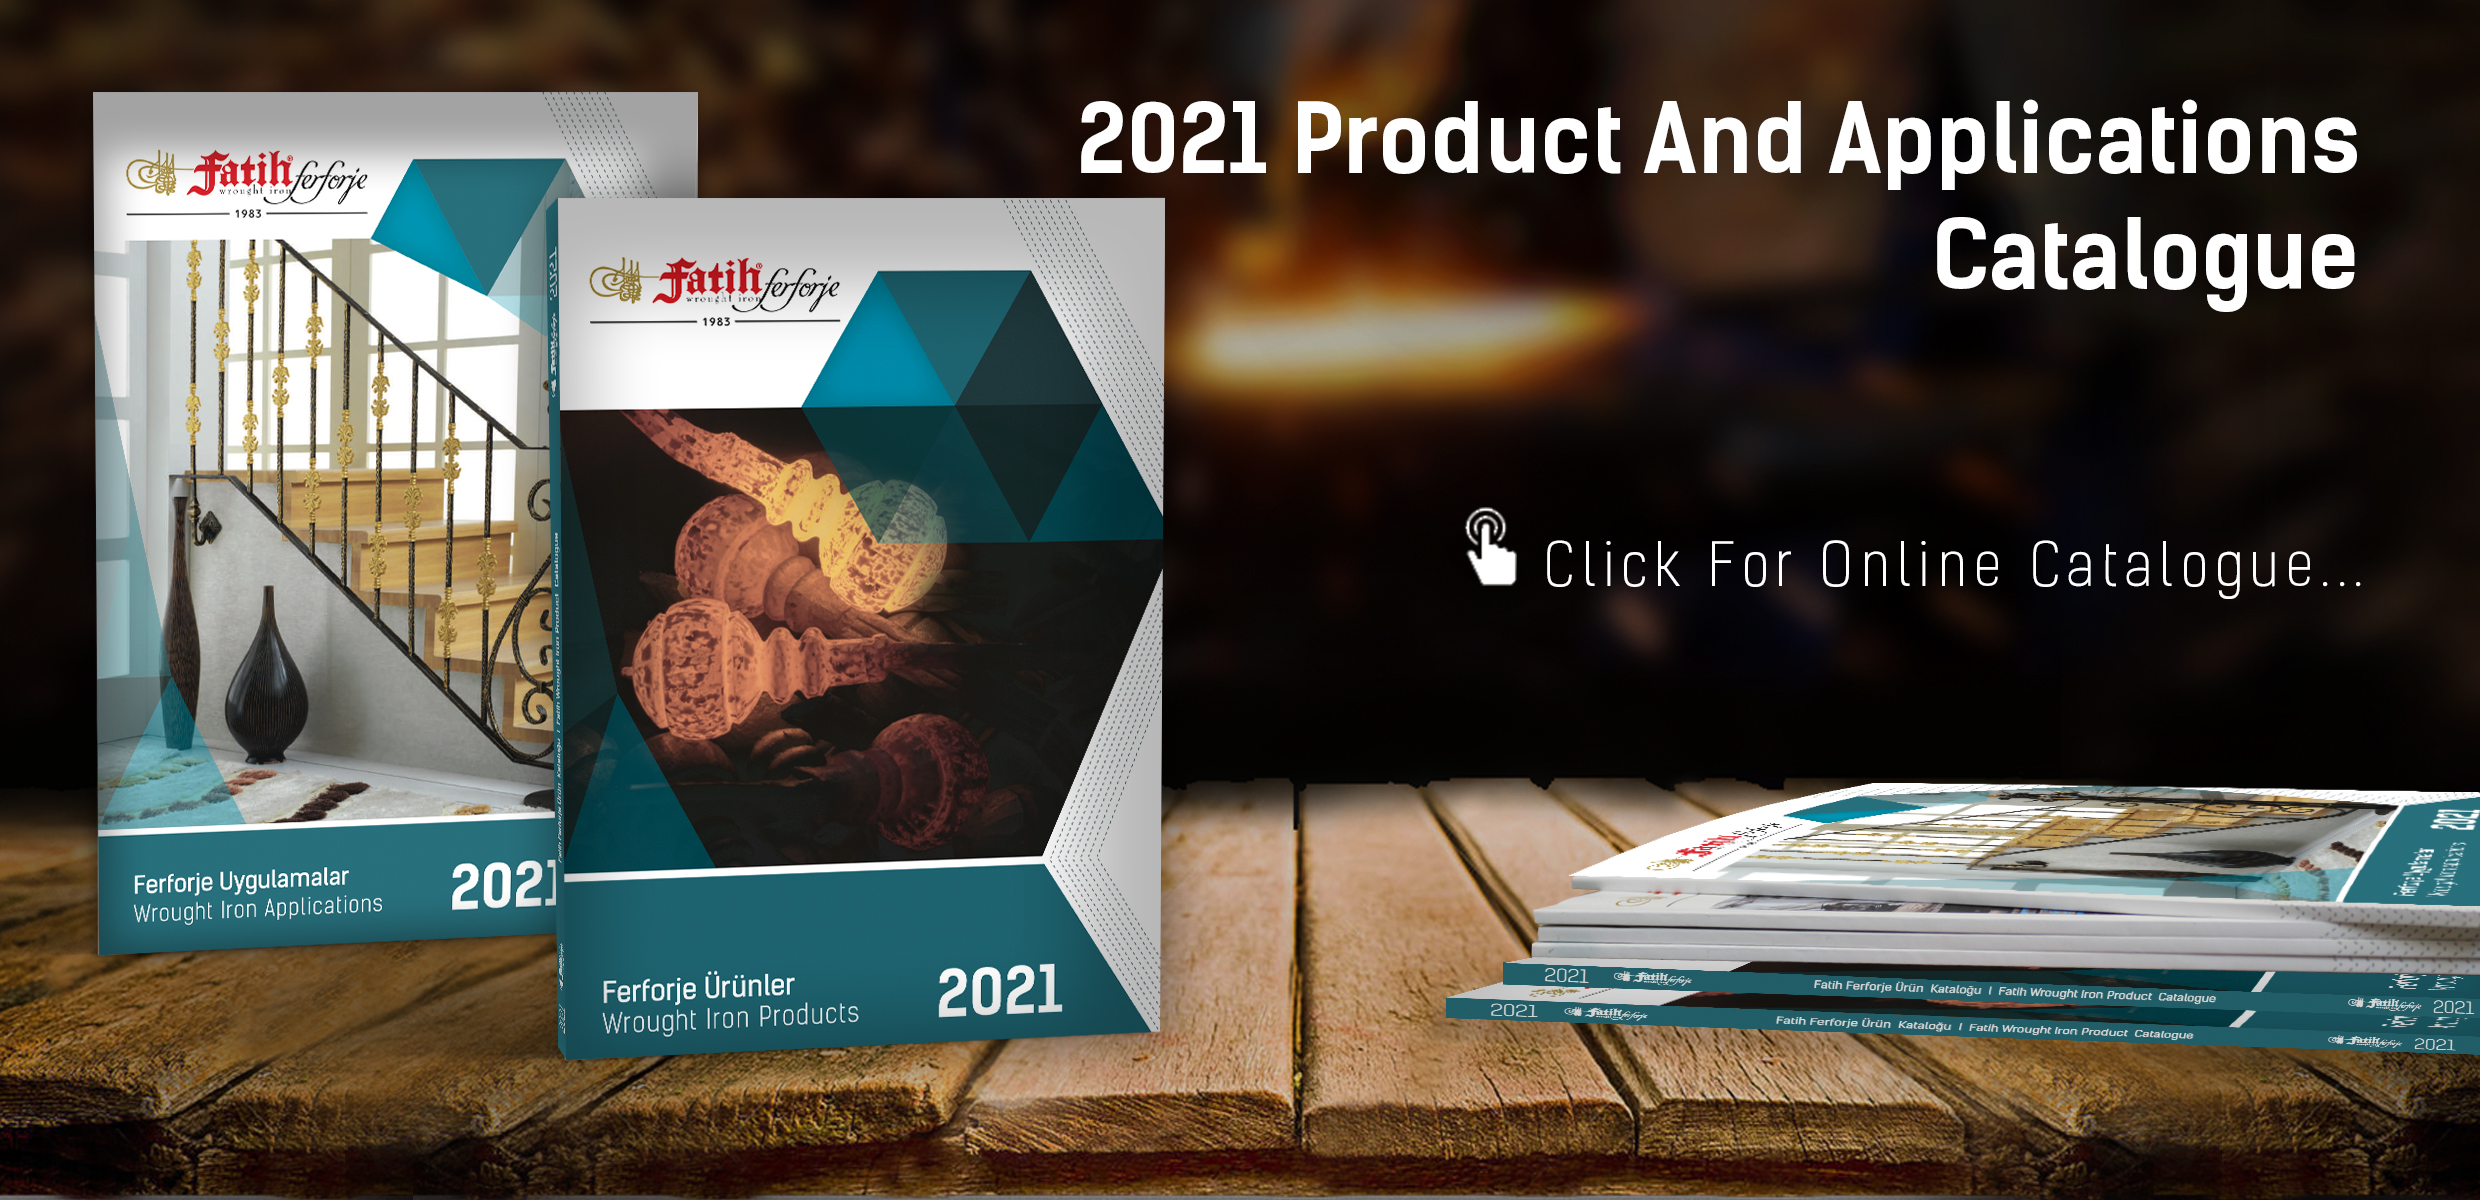 2021 Product And Applications